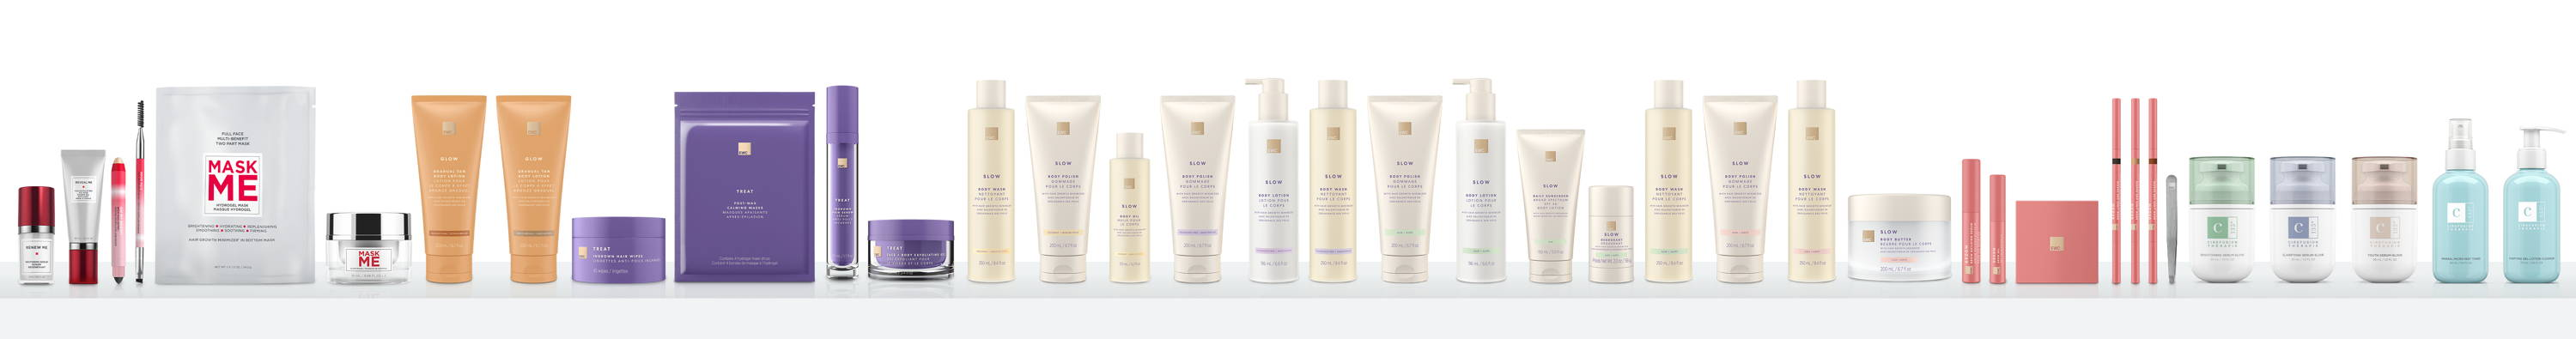 European Wax Center's line of post wax and skin care products